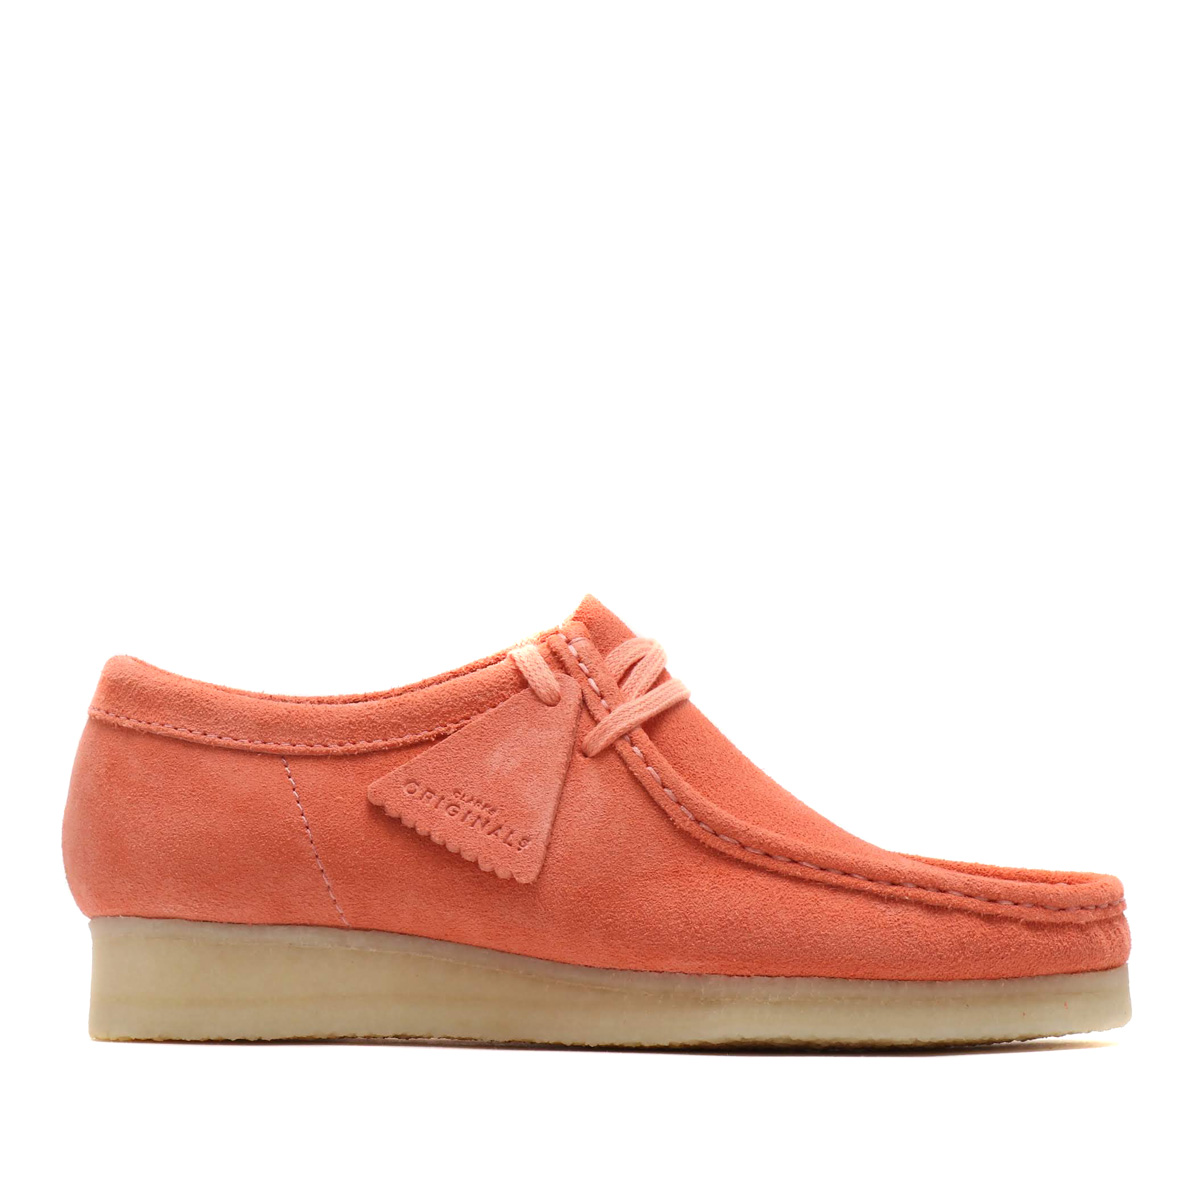 Clarks Wallabee(Coral Suede)(クラークス ワラビー)【メンズ】【モカシン】【19SP-I】